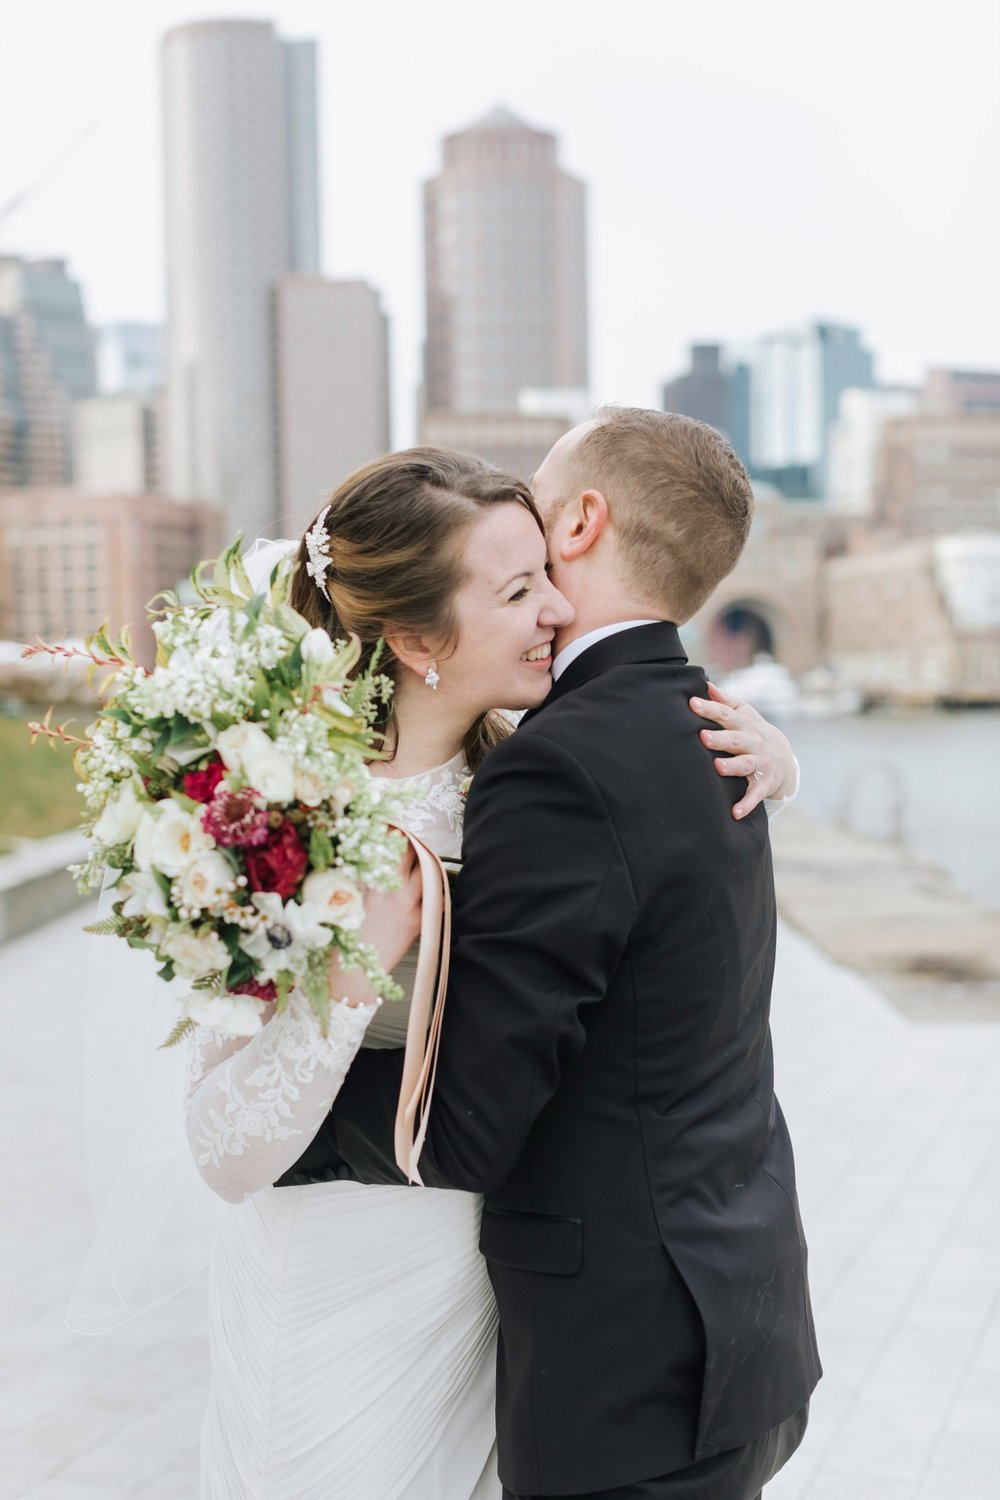 Seaport-Boston-City-Hall-Wedding-Elopement-Lena-Mirisola-3.JPG